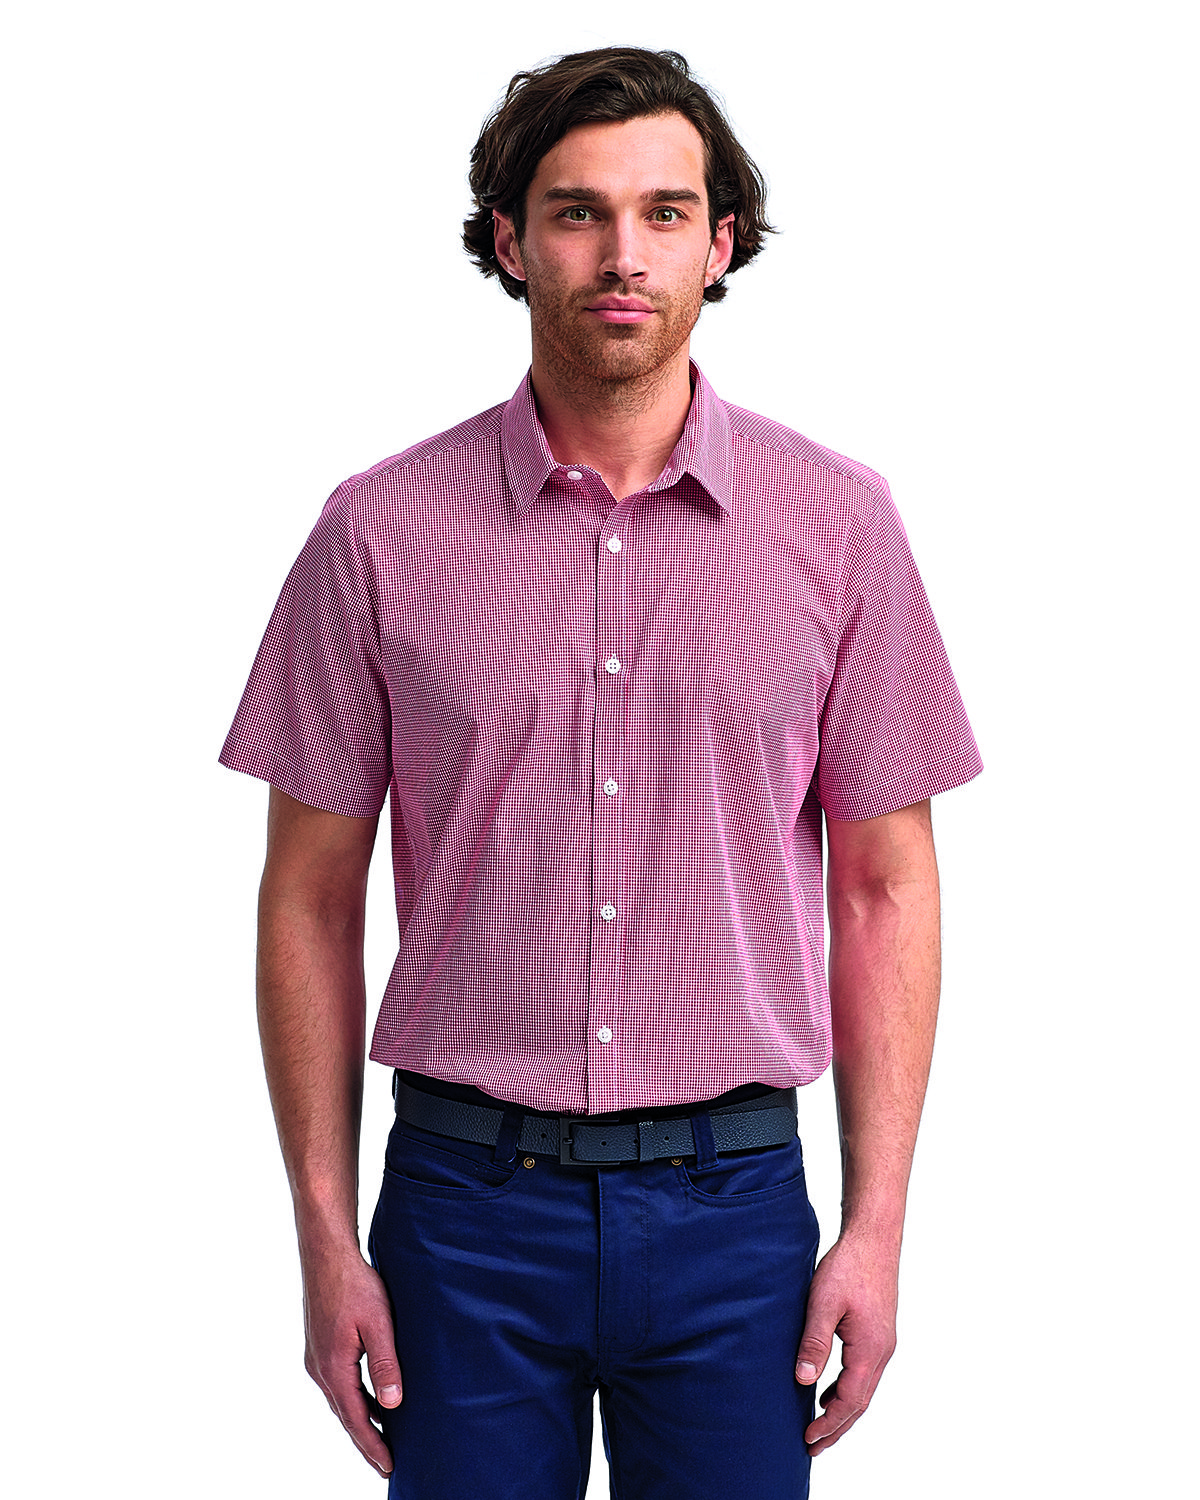 Artisan Collection by Reprime Mens Microcheck Gingham Short-Sleeve Cotton Shirt RED/ WHITE